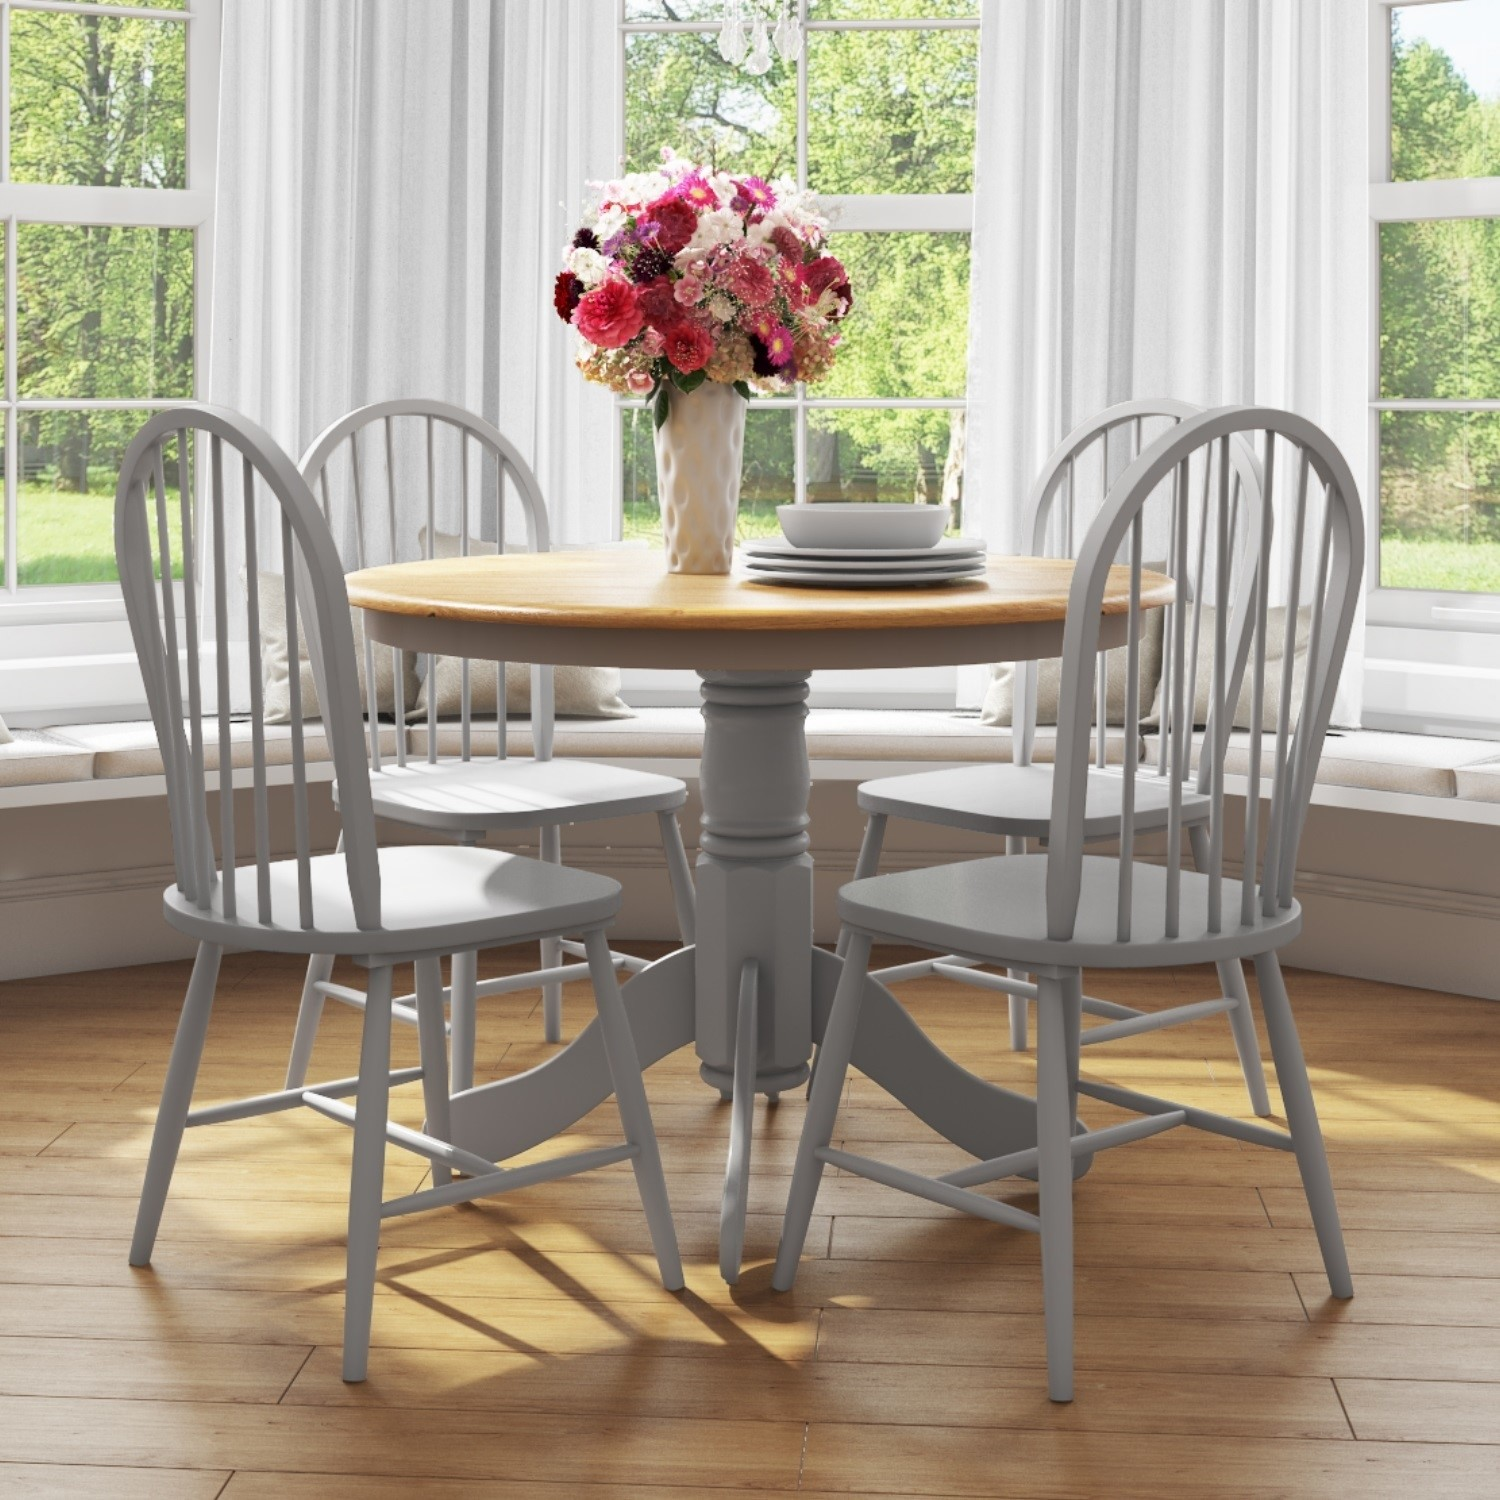 Round Dining Table with 4 Chairs in & Grey with Oak Finish -